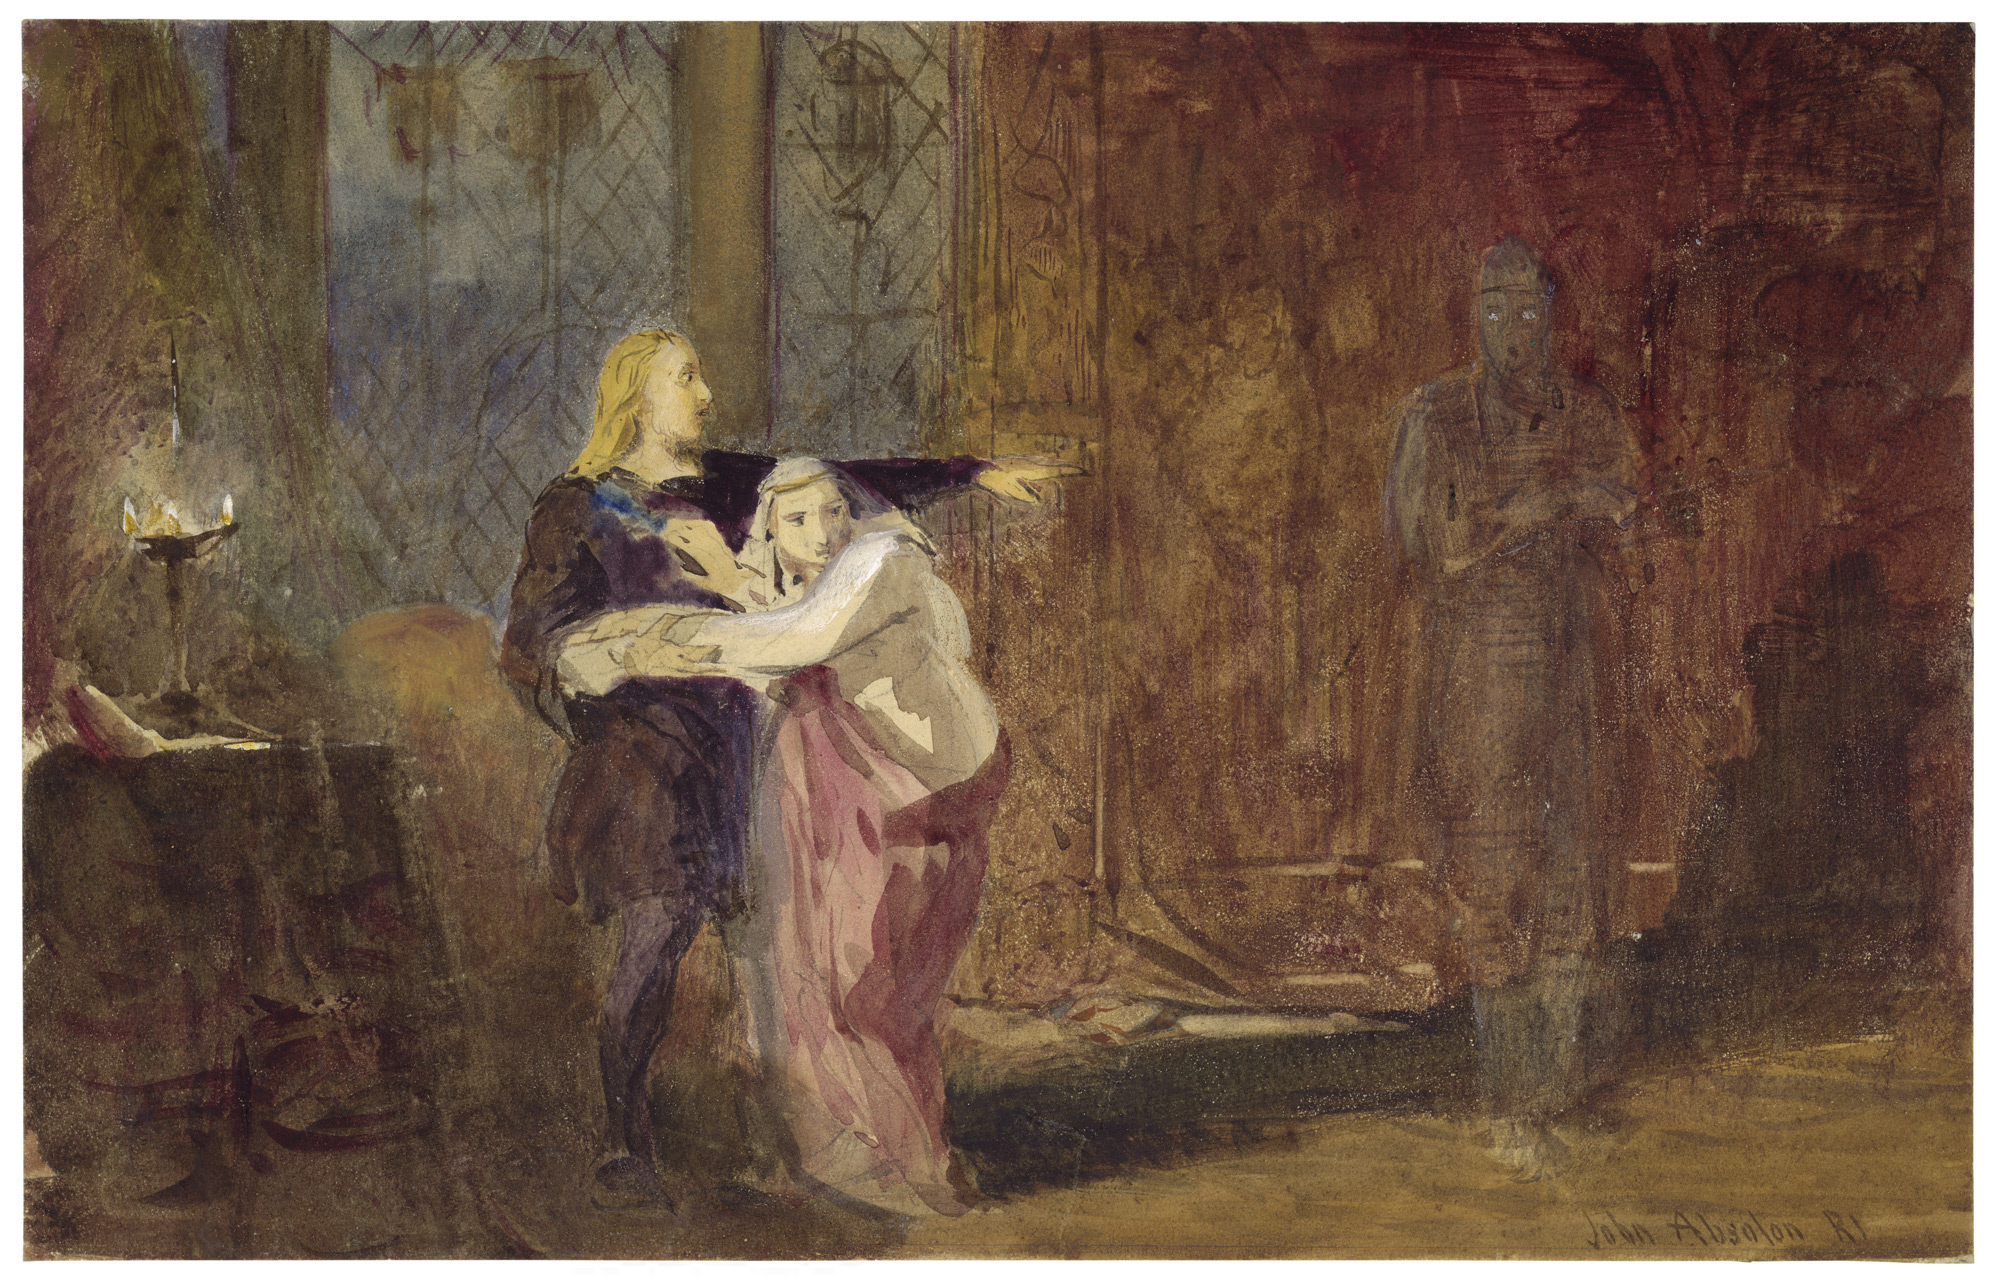 Edmund Kean as Hamlet with ghost